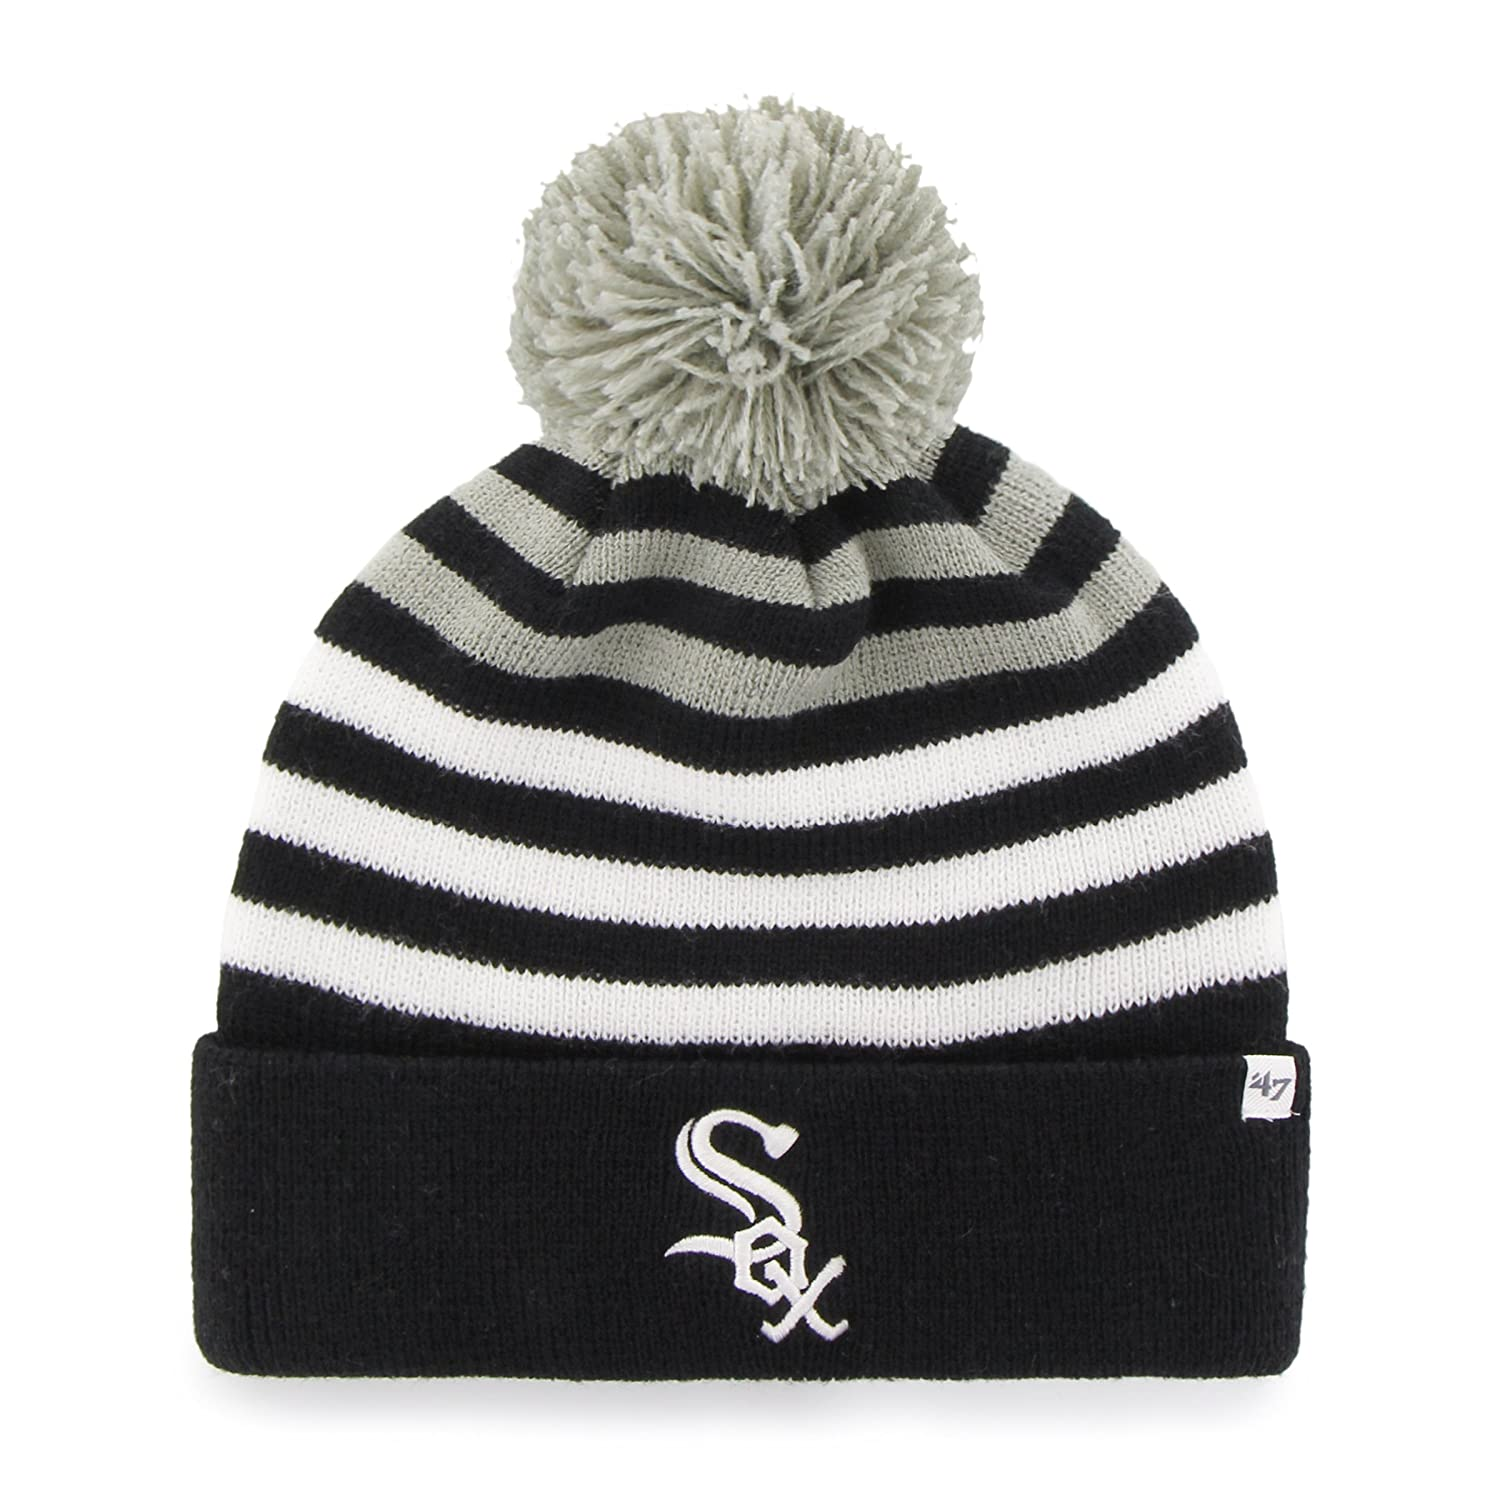 '47 Brand MLB Youth Yipes Cuff Knit with Pom One Size Navy Twins Enterprise/47 Brand